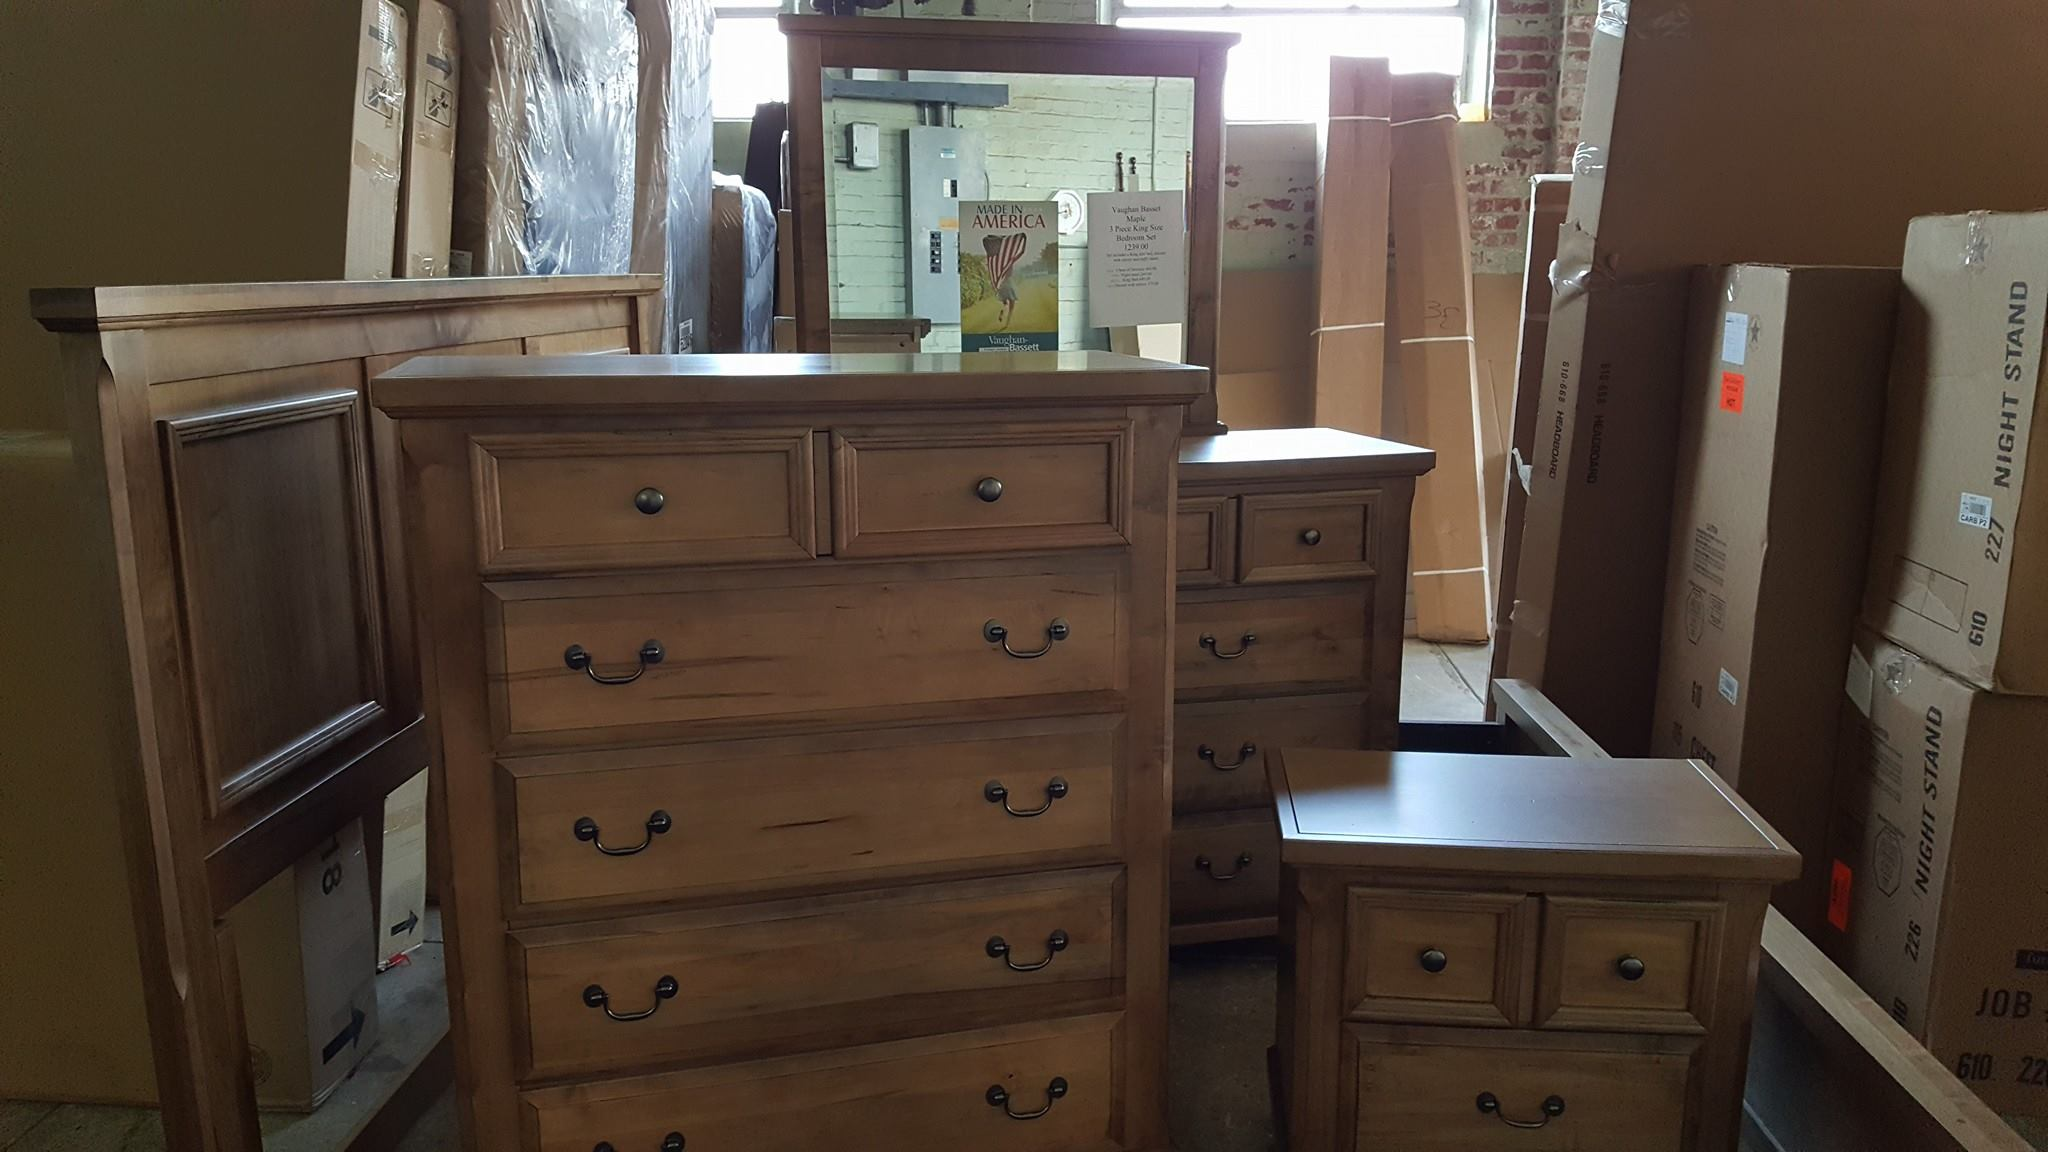 New Vaughan Bassett Maple King Size Bed, Dresser with mirror, and night stand